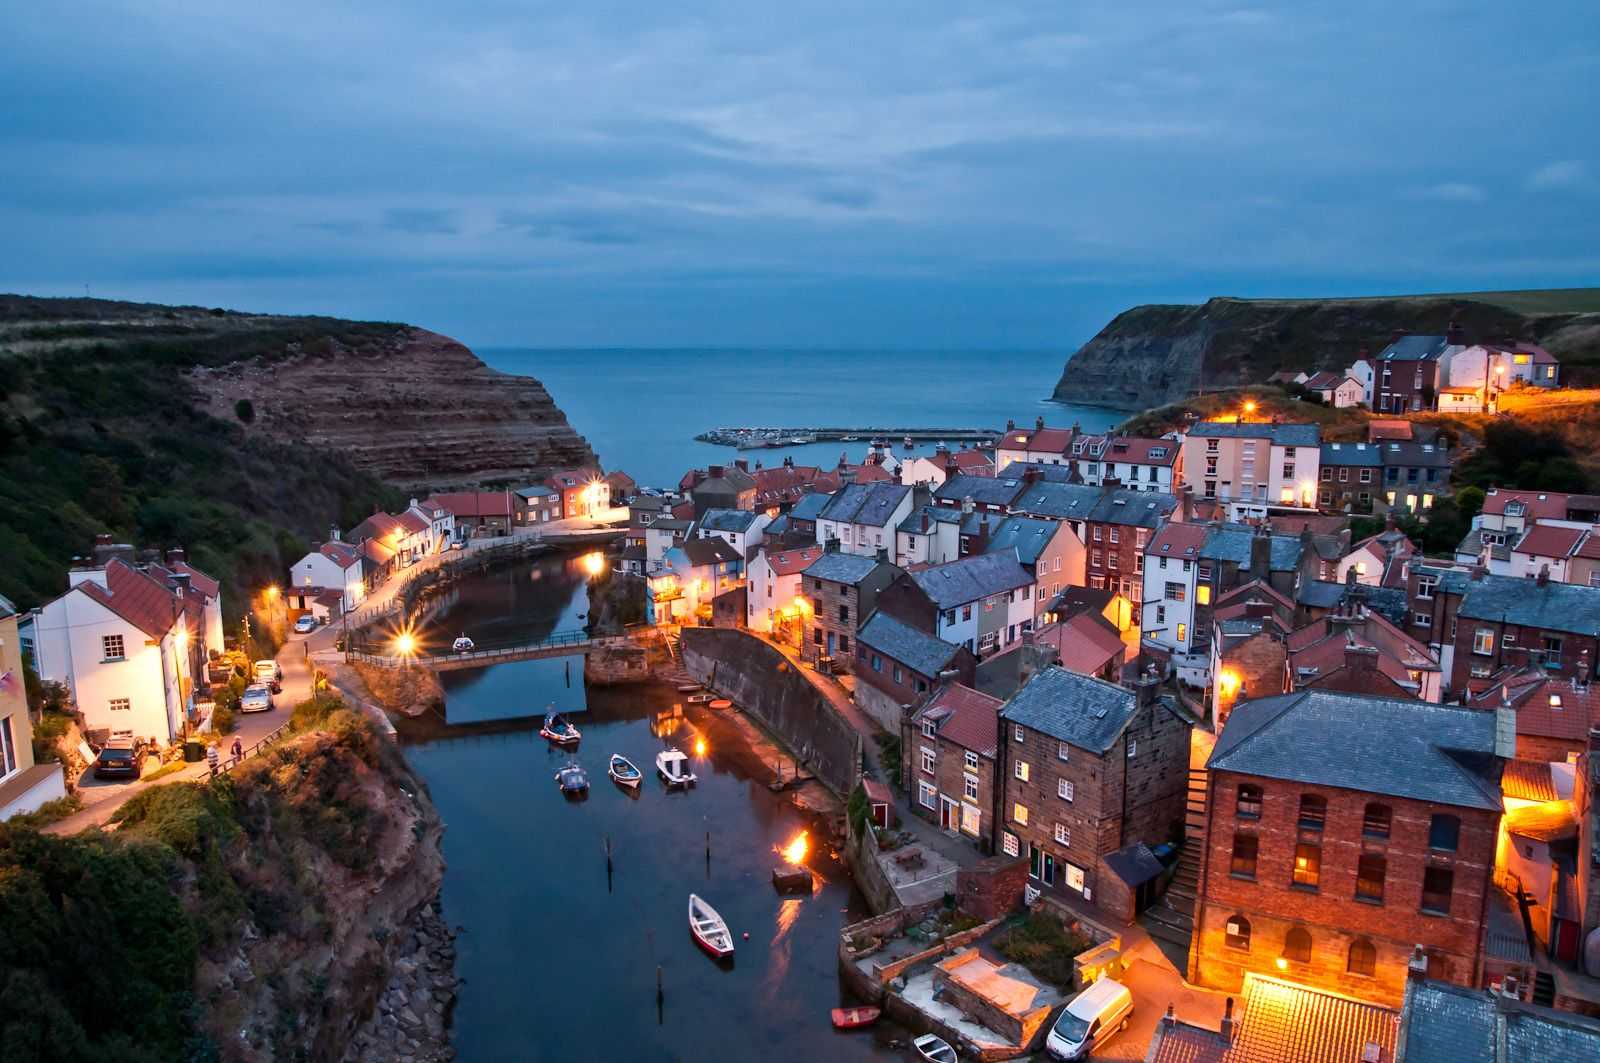 Staithes - Village in England - Thousand Wonders